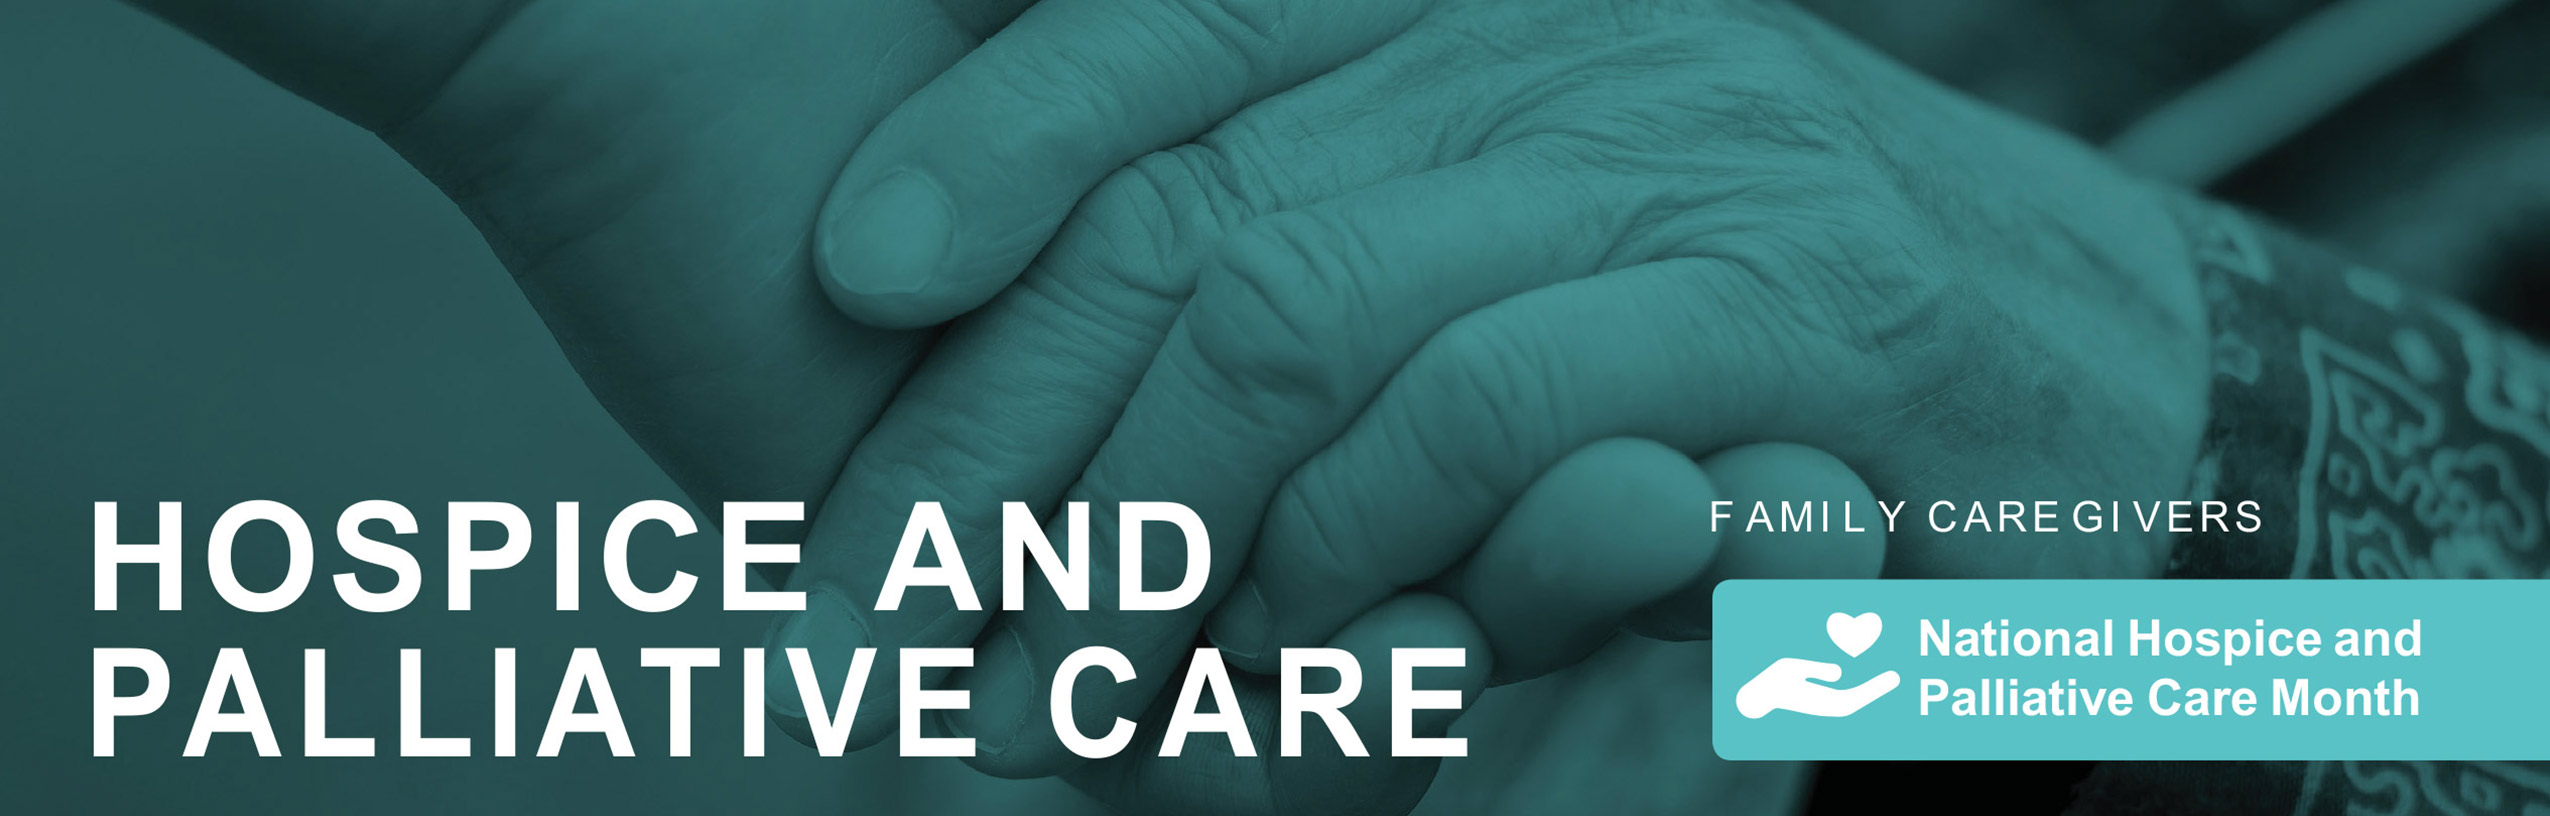 Palliative care and Hospice Care - Home Care For Adults